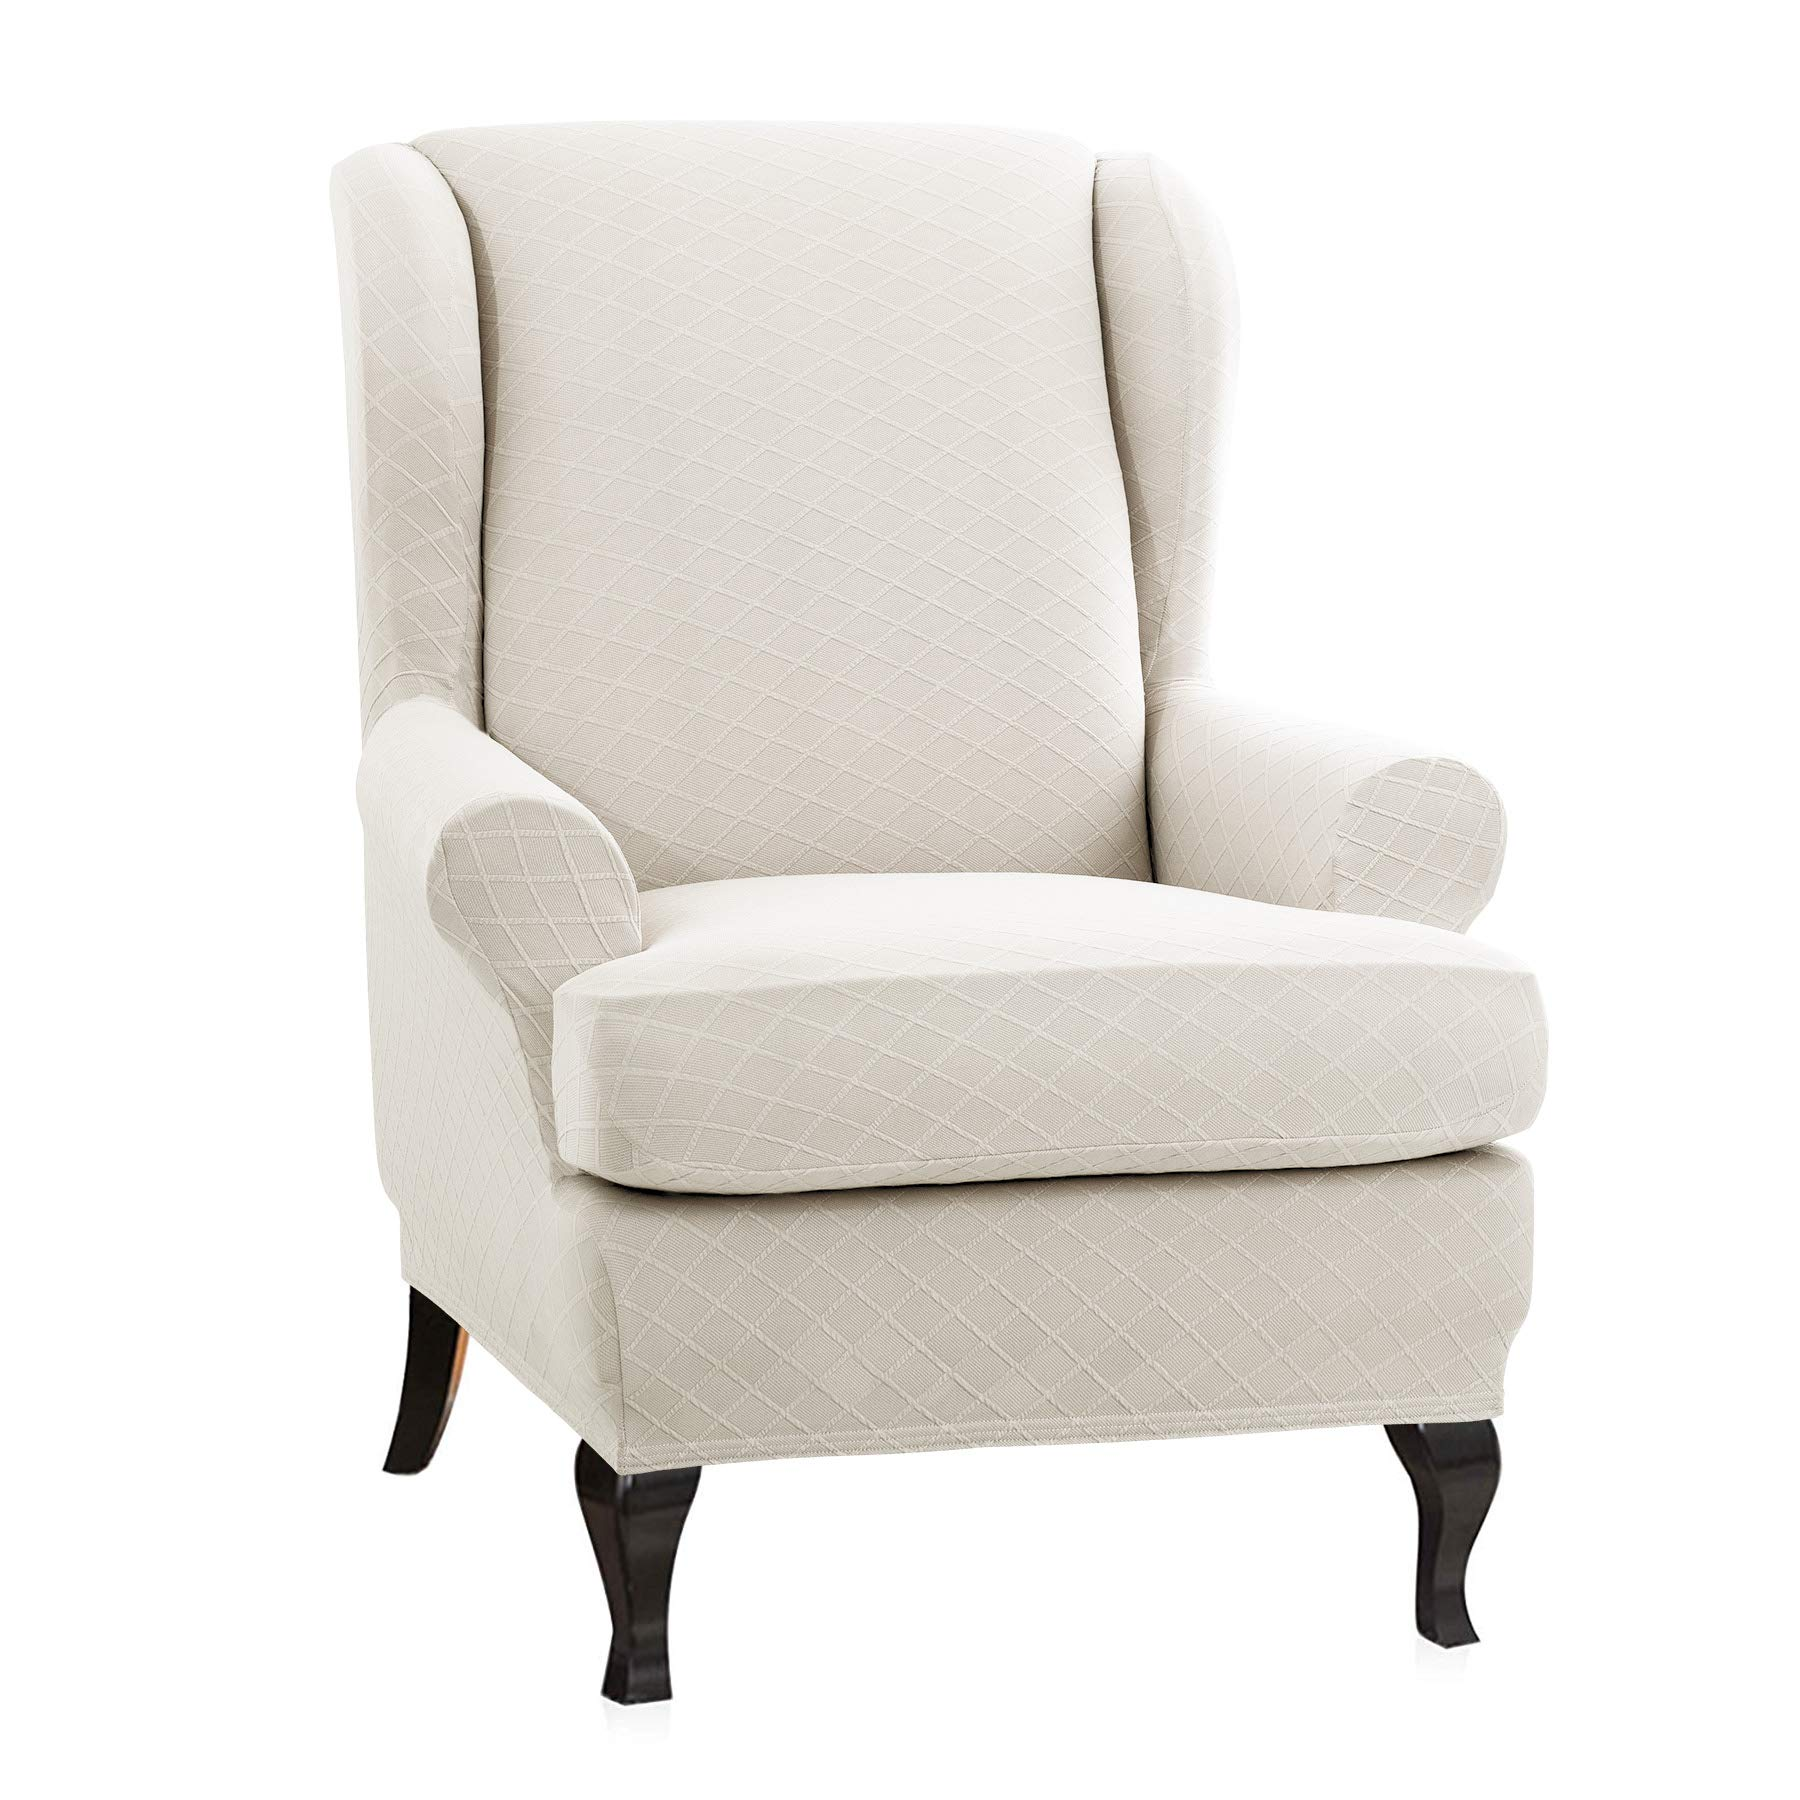 CHUN YI 2-Piece Rhombus Jacquard Wing Chair Cover,Universal Wing Back Wingback Armchair Covers Chair with Arms Slipcovers Furniture Protector (Wing Chair, Cream White)